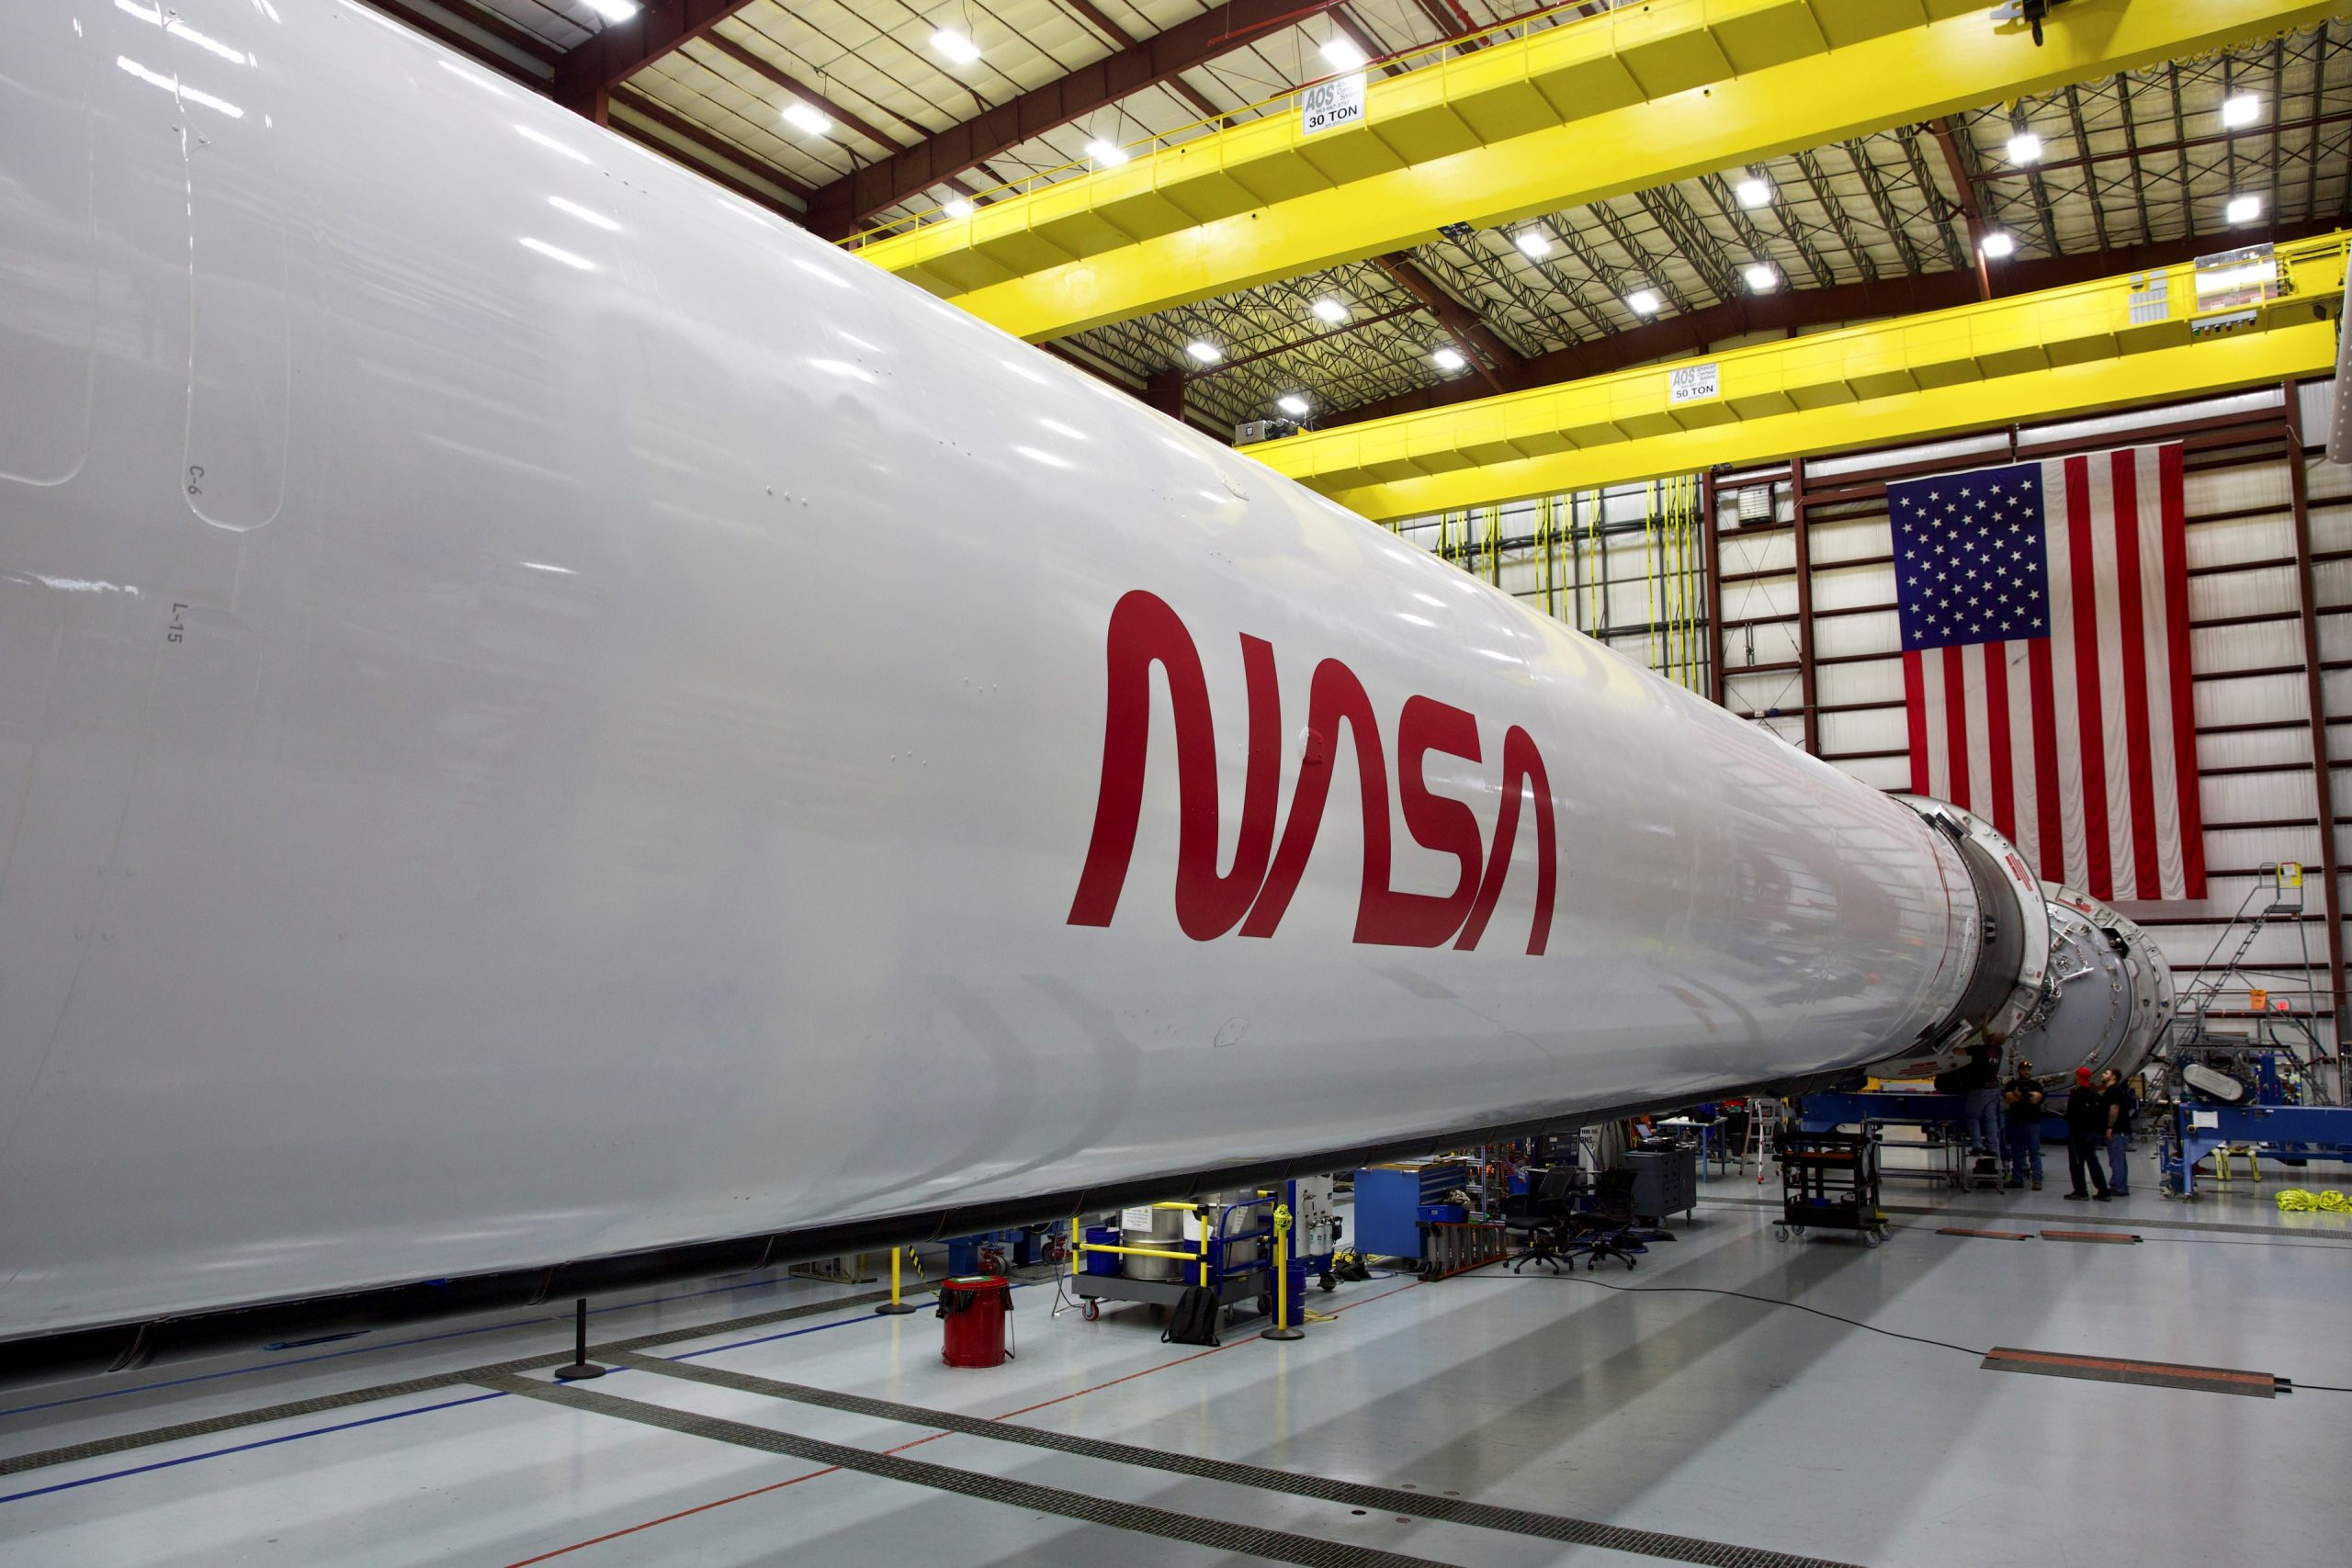 Space X Demo-2